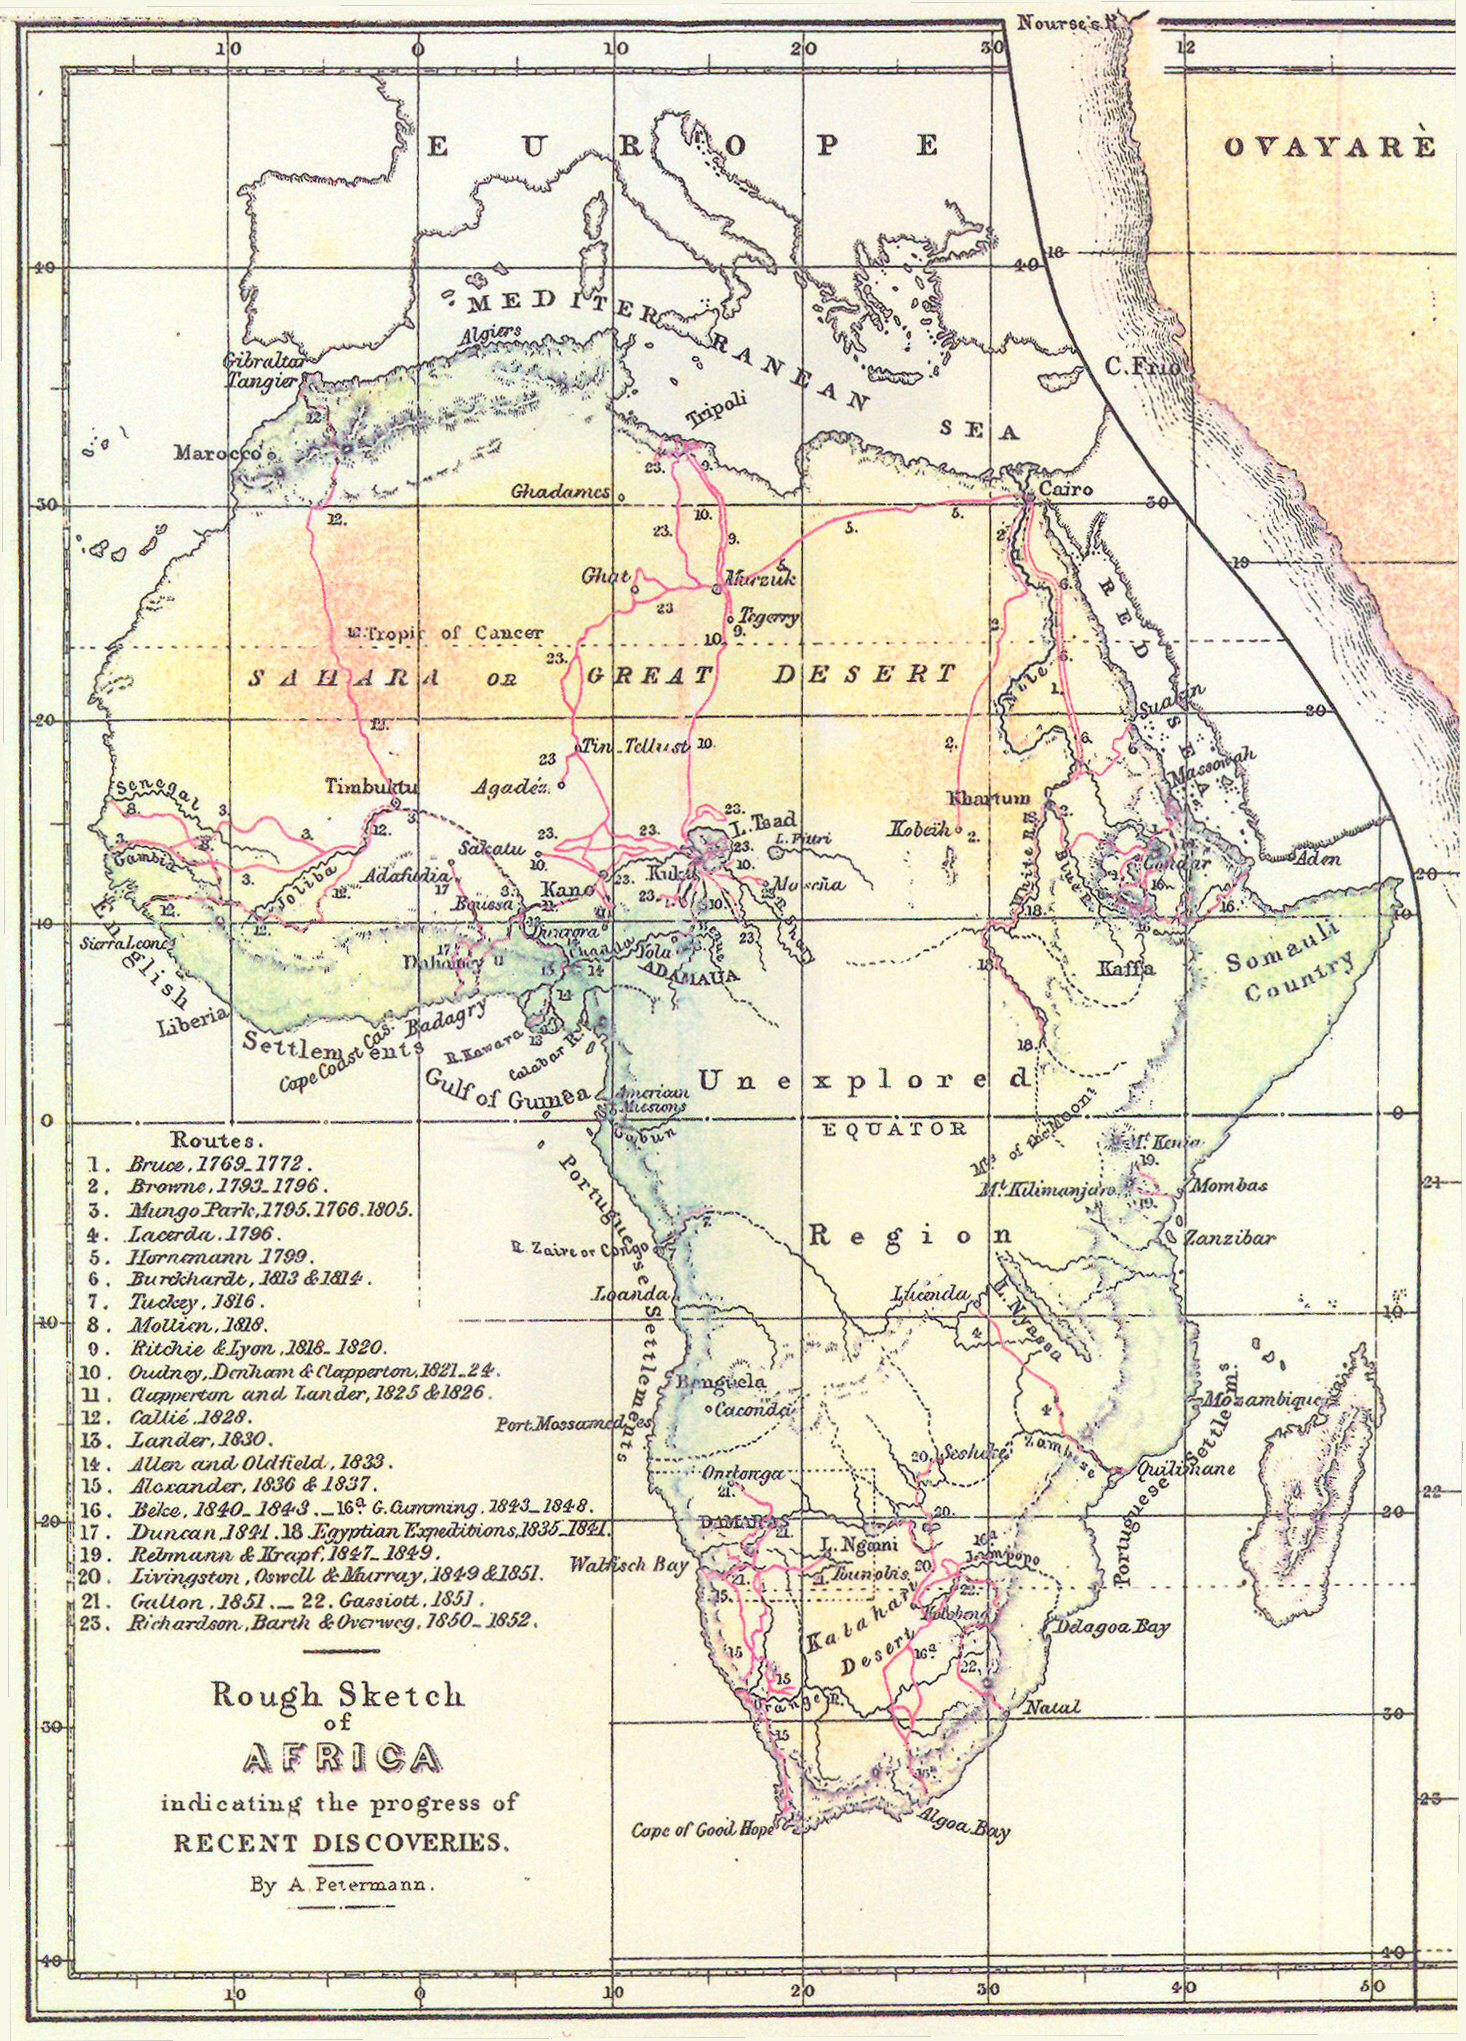 traditions of conflict in south africa The entry points up the social character of african ethics and highlights its affiliated notions of the ethics of duty in south sotho west african traditional religion, jurong, singapore: fep international private limited parrinder.